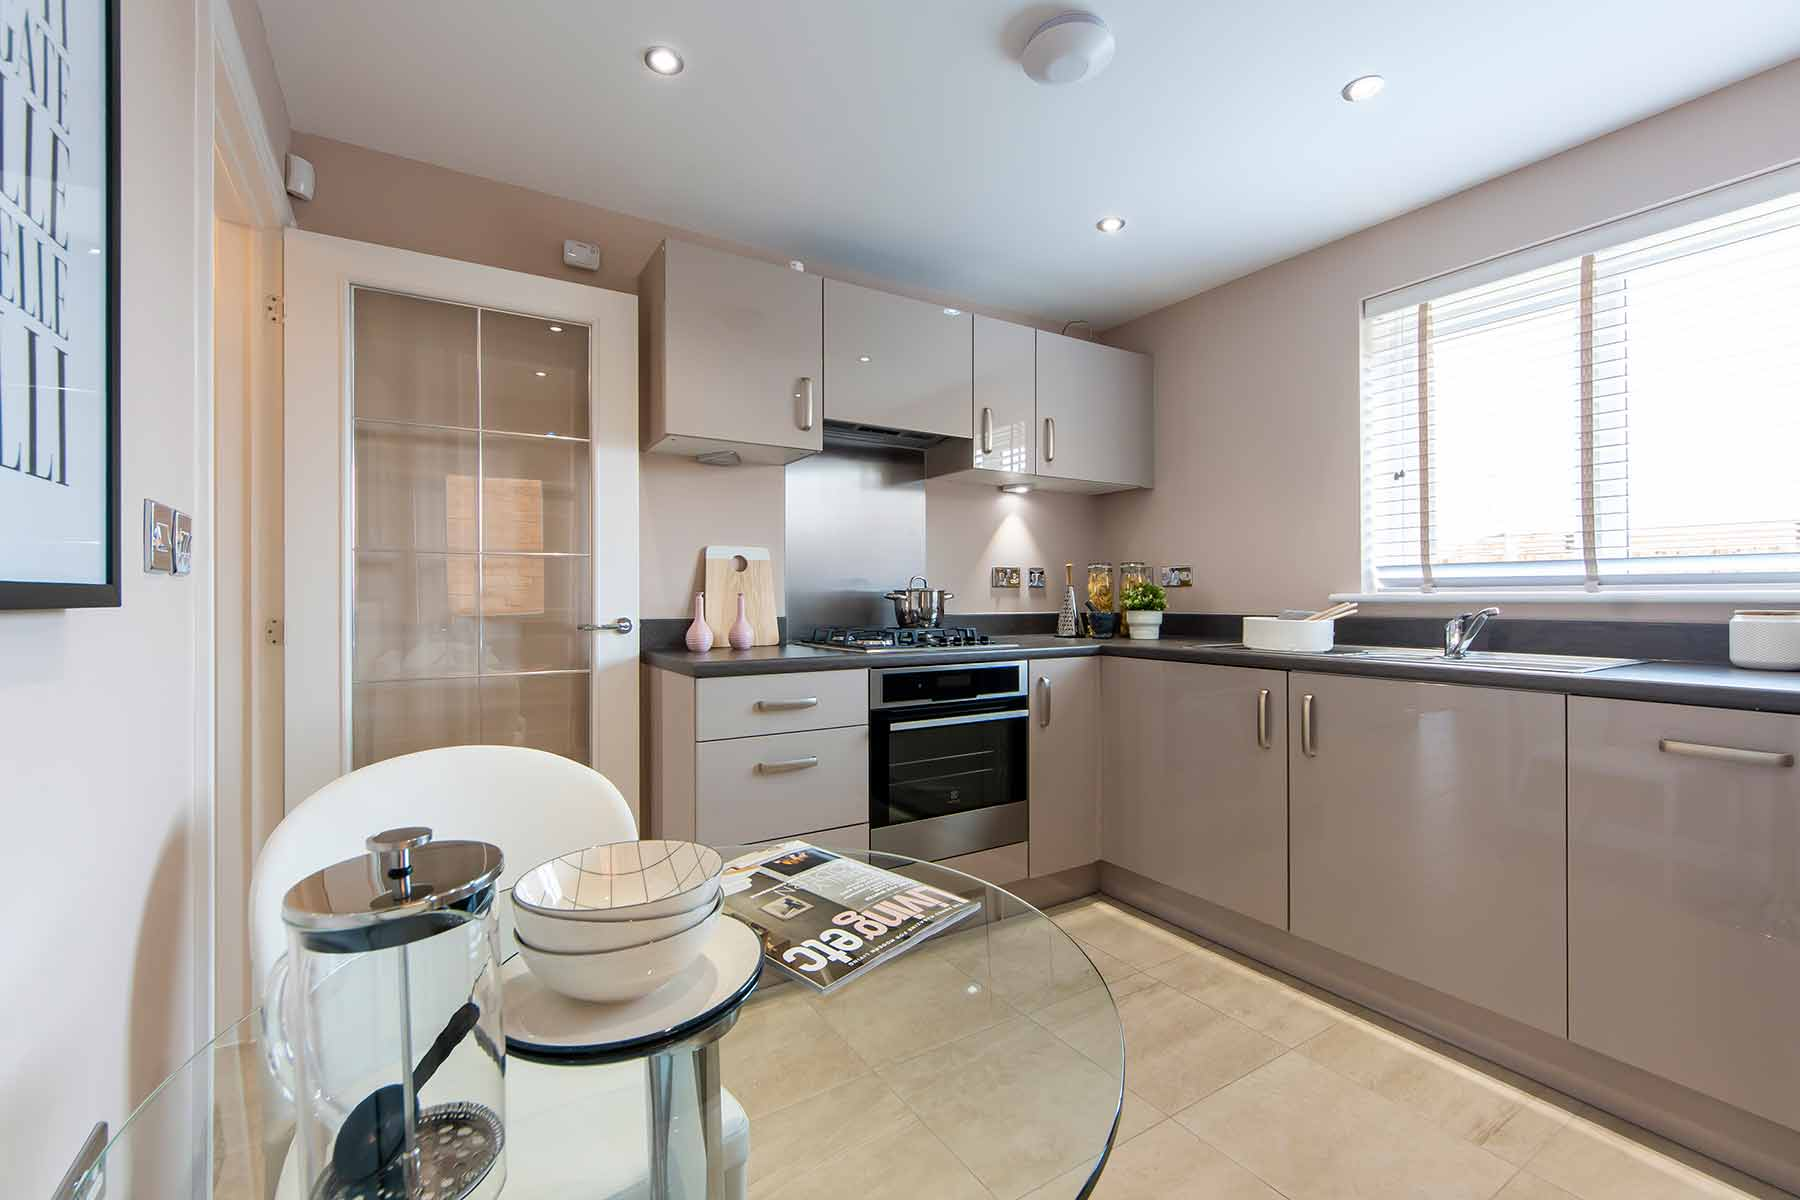 Kitchen Aldenham-3bedroom-showhome_10